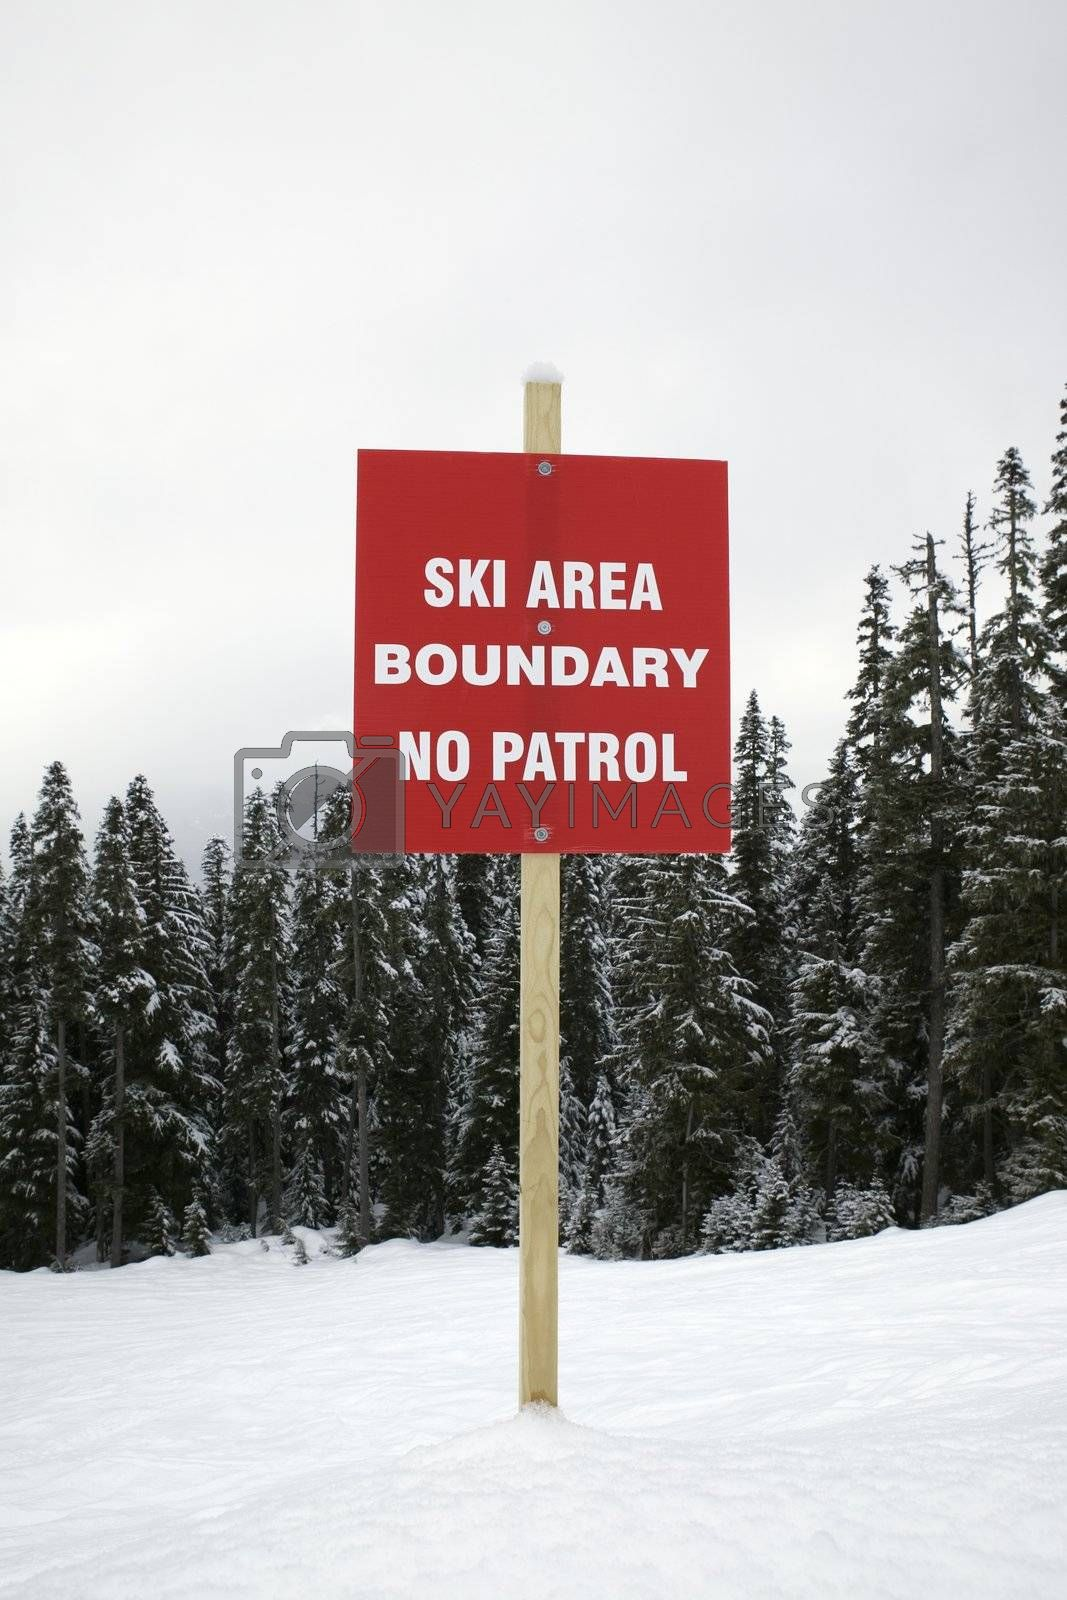 Boundary sign at ski slope warning of no patrol.